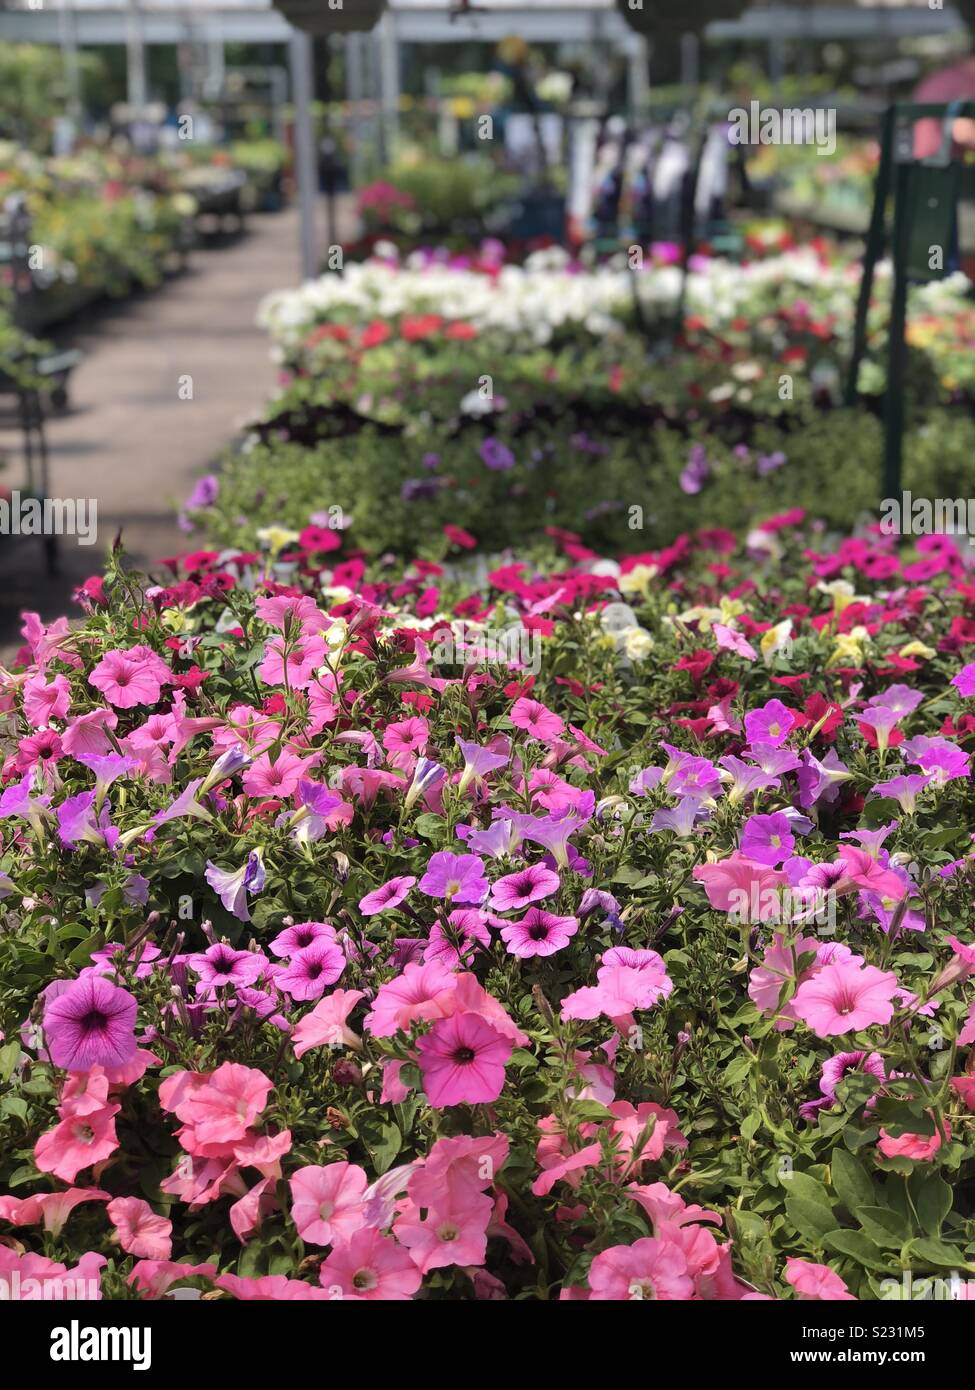 Saturday At The Garden Center Buying Bright Colorful Spring Flowers